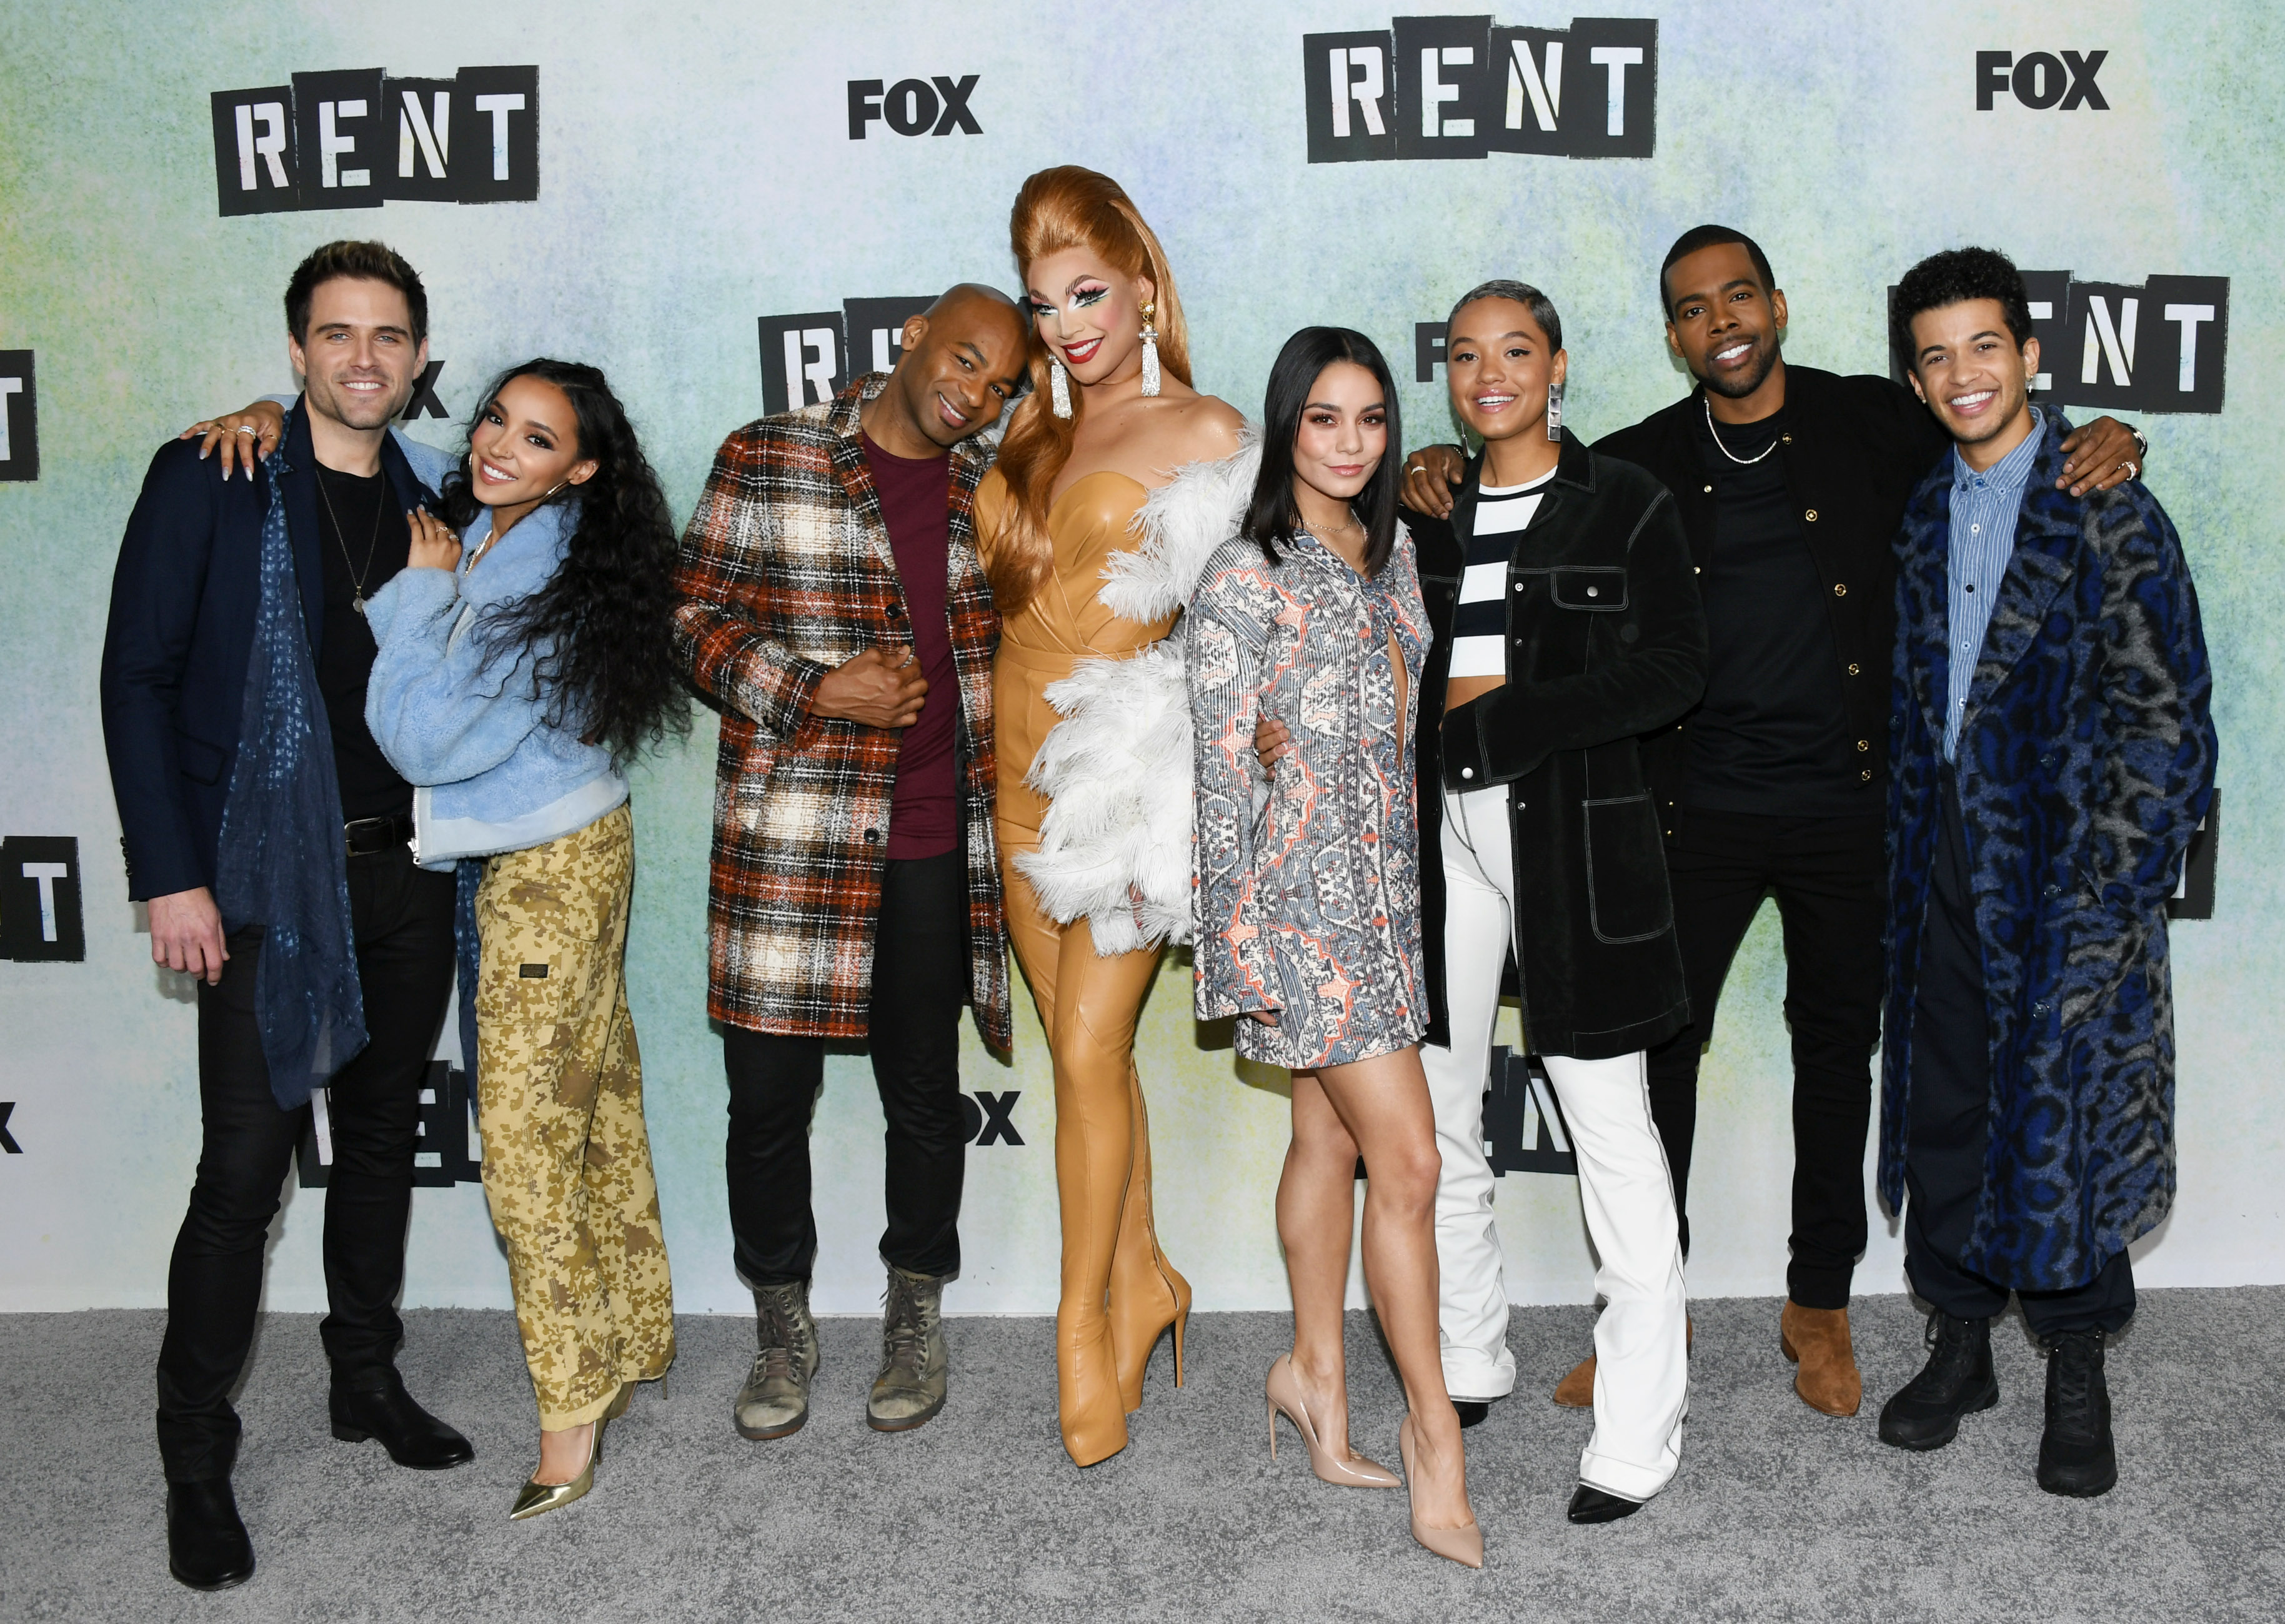 Brennin Hunt, Tinashe, Brandon Victor Dixon, Valentina, Vanessa Hudgens, Kiersey Clemons, Mario and Jordan Fisher attend FOX Hosts  RENT  Press Junket at Fox Studio Lot on Jan. 08, 2019 in Century City, Calif.